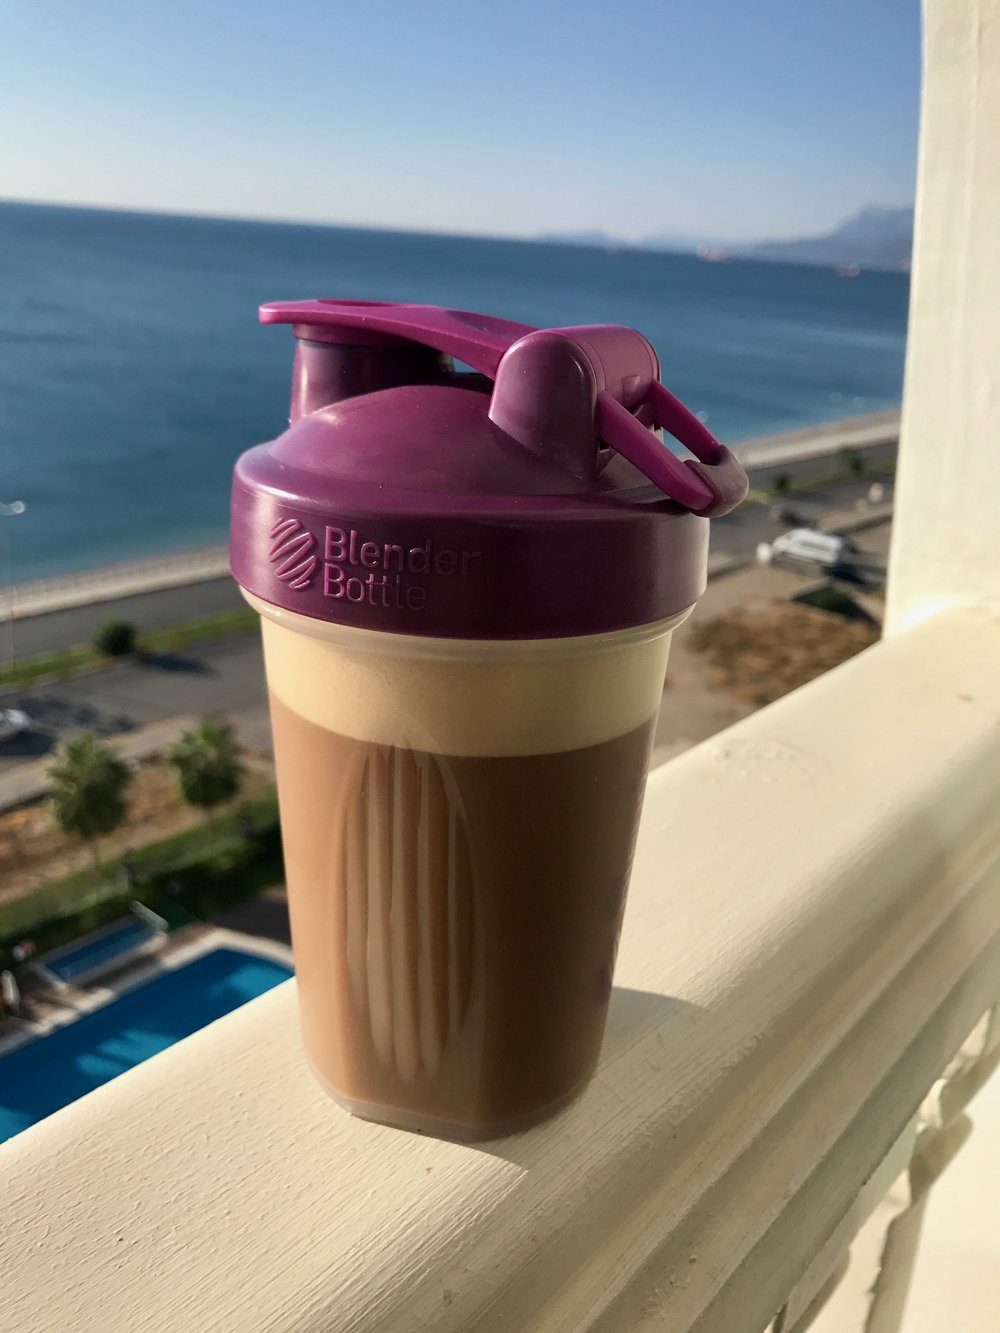 My Blender Bottle posing with a vanilla-coffee shake in Antalya, Turkey.